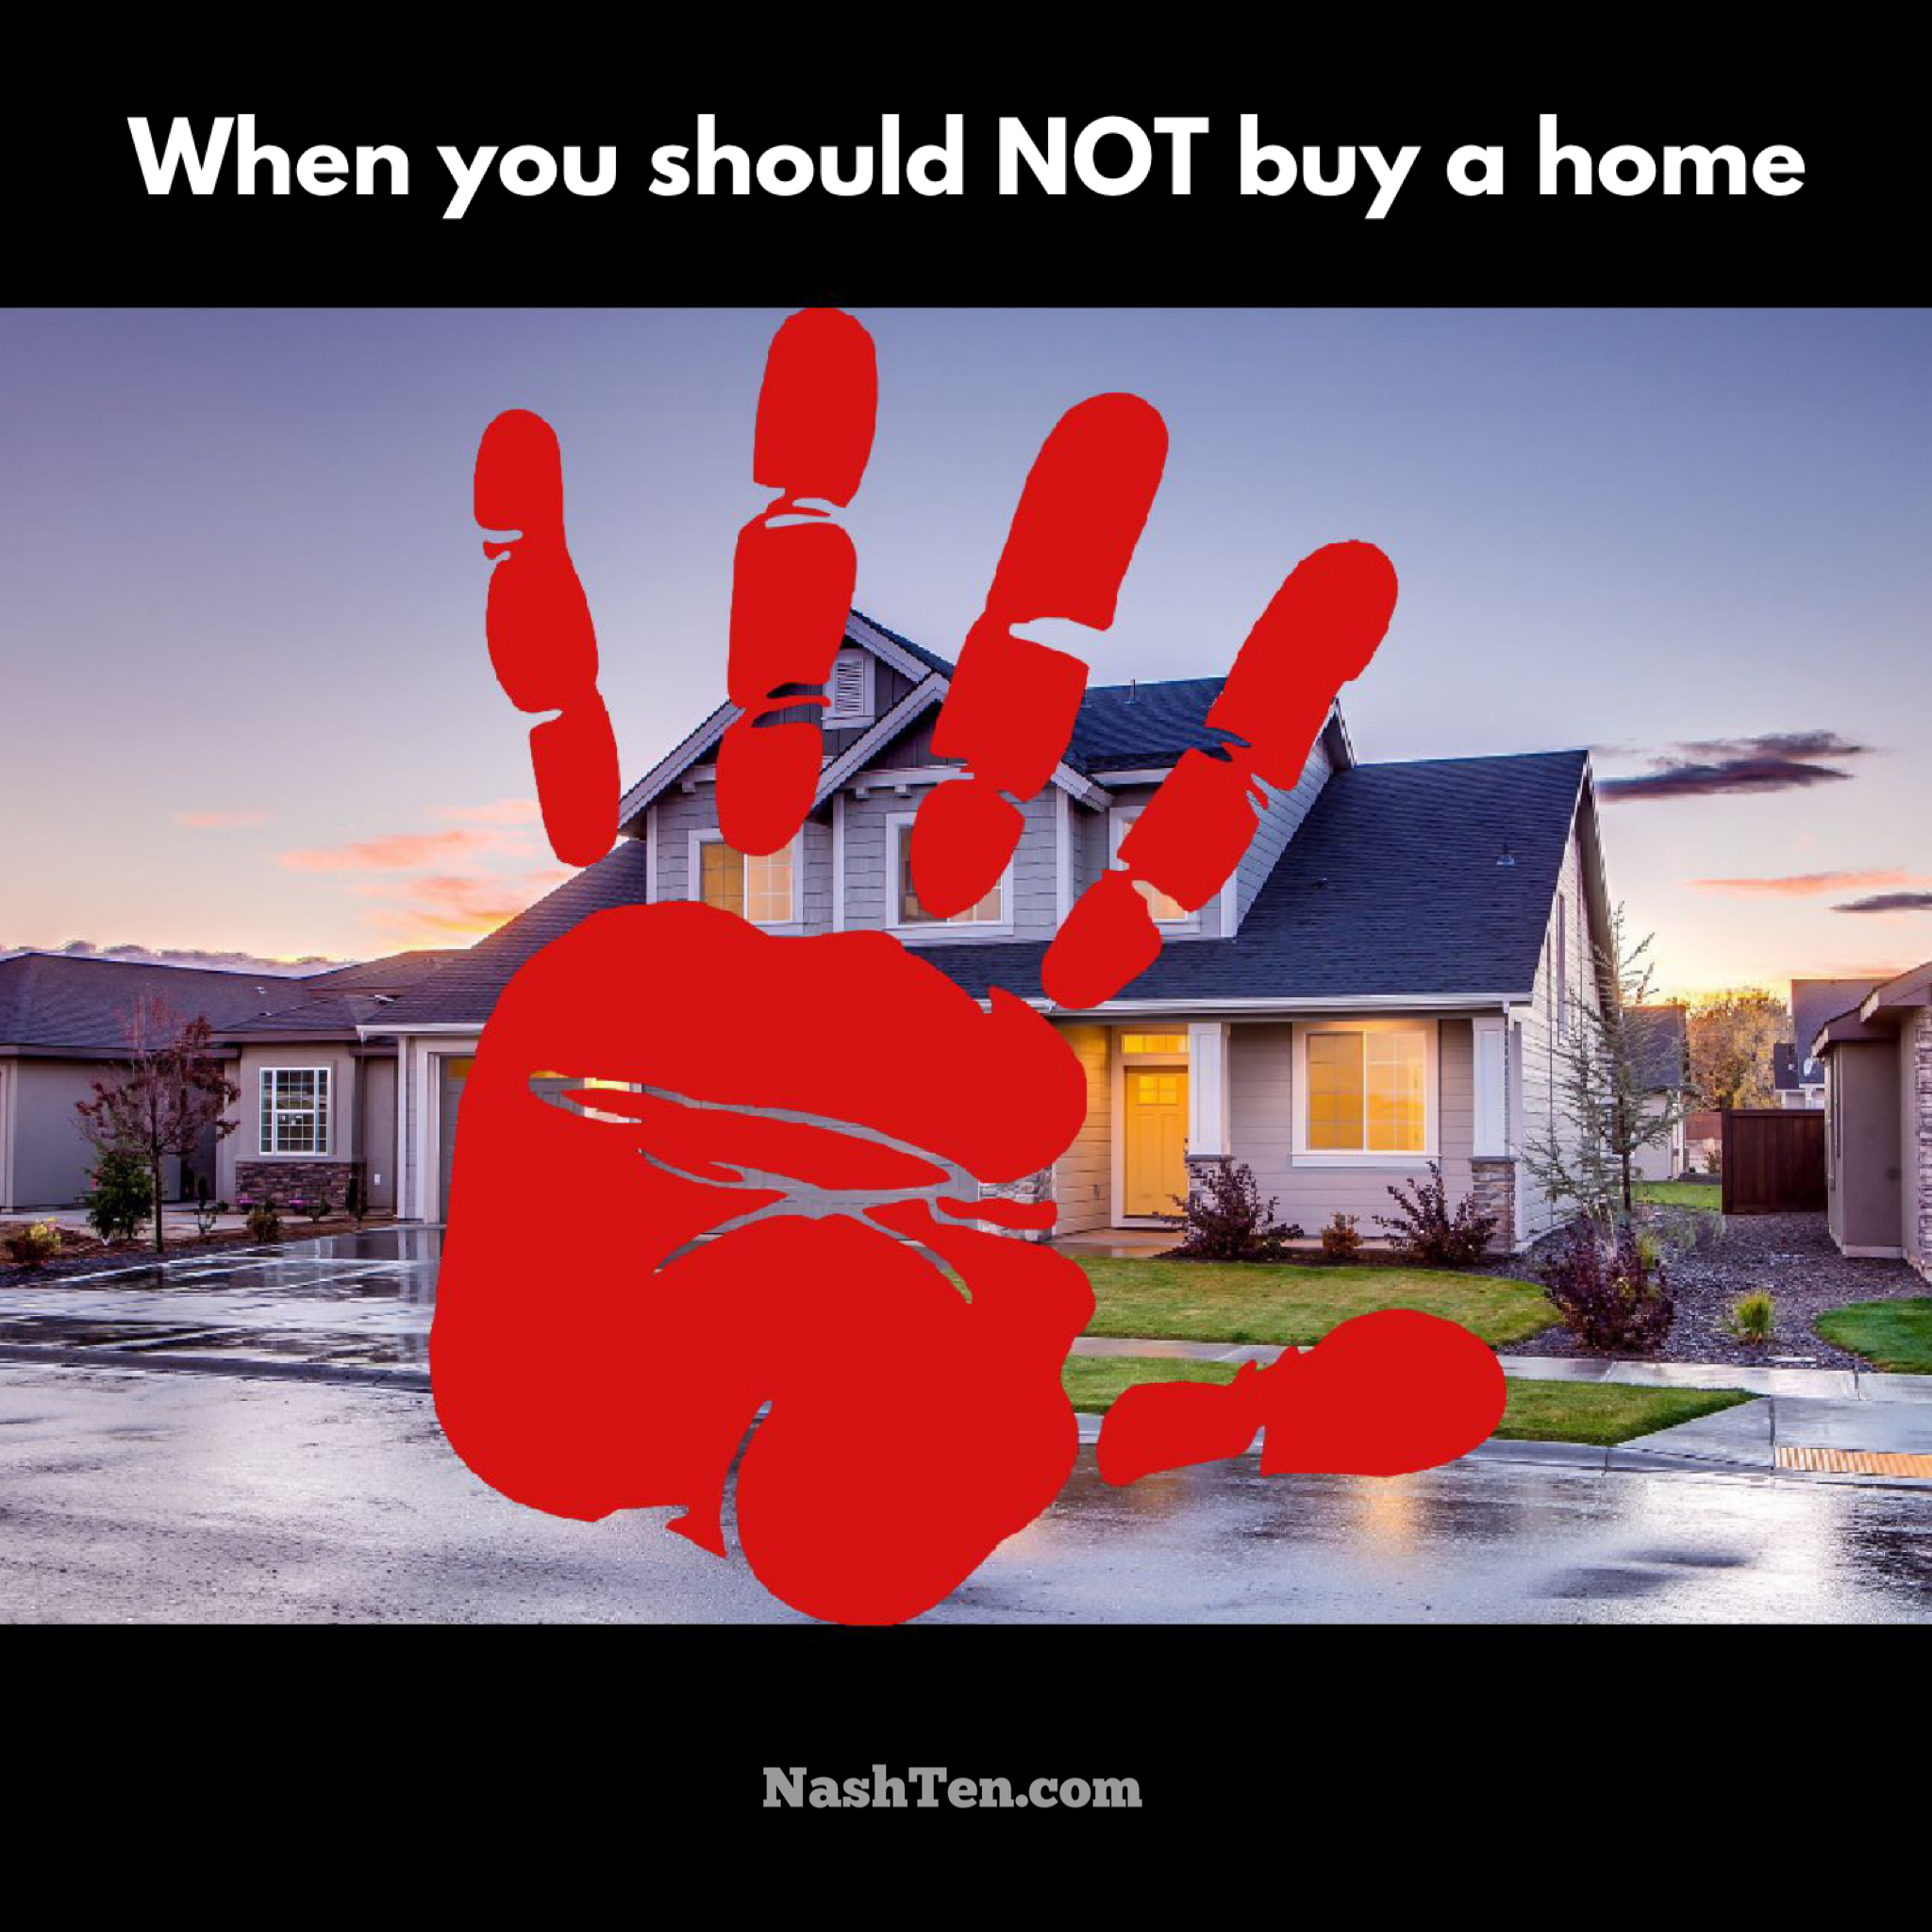 This is when you should not buy a home